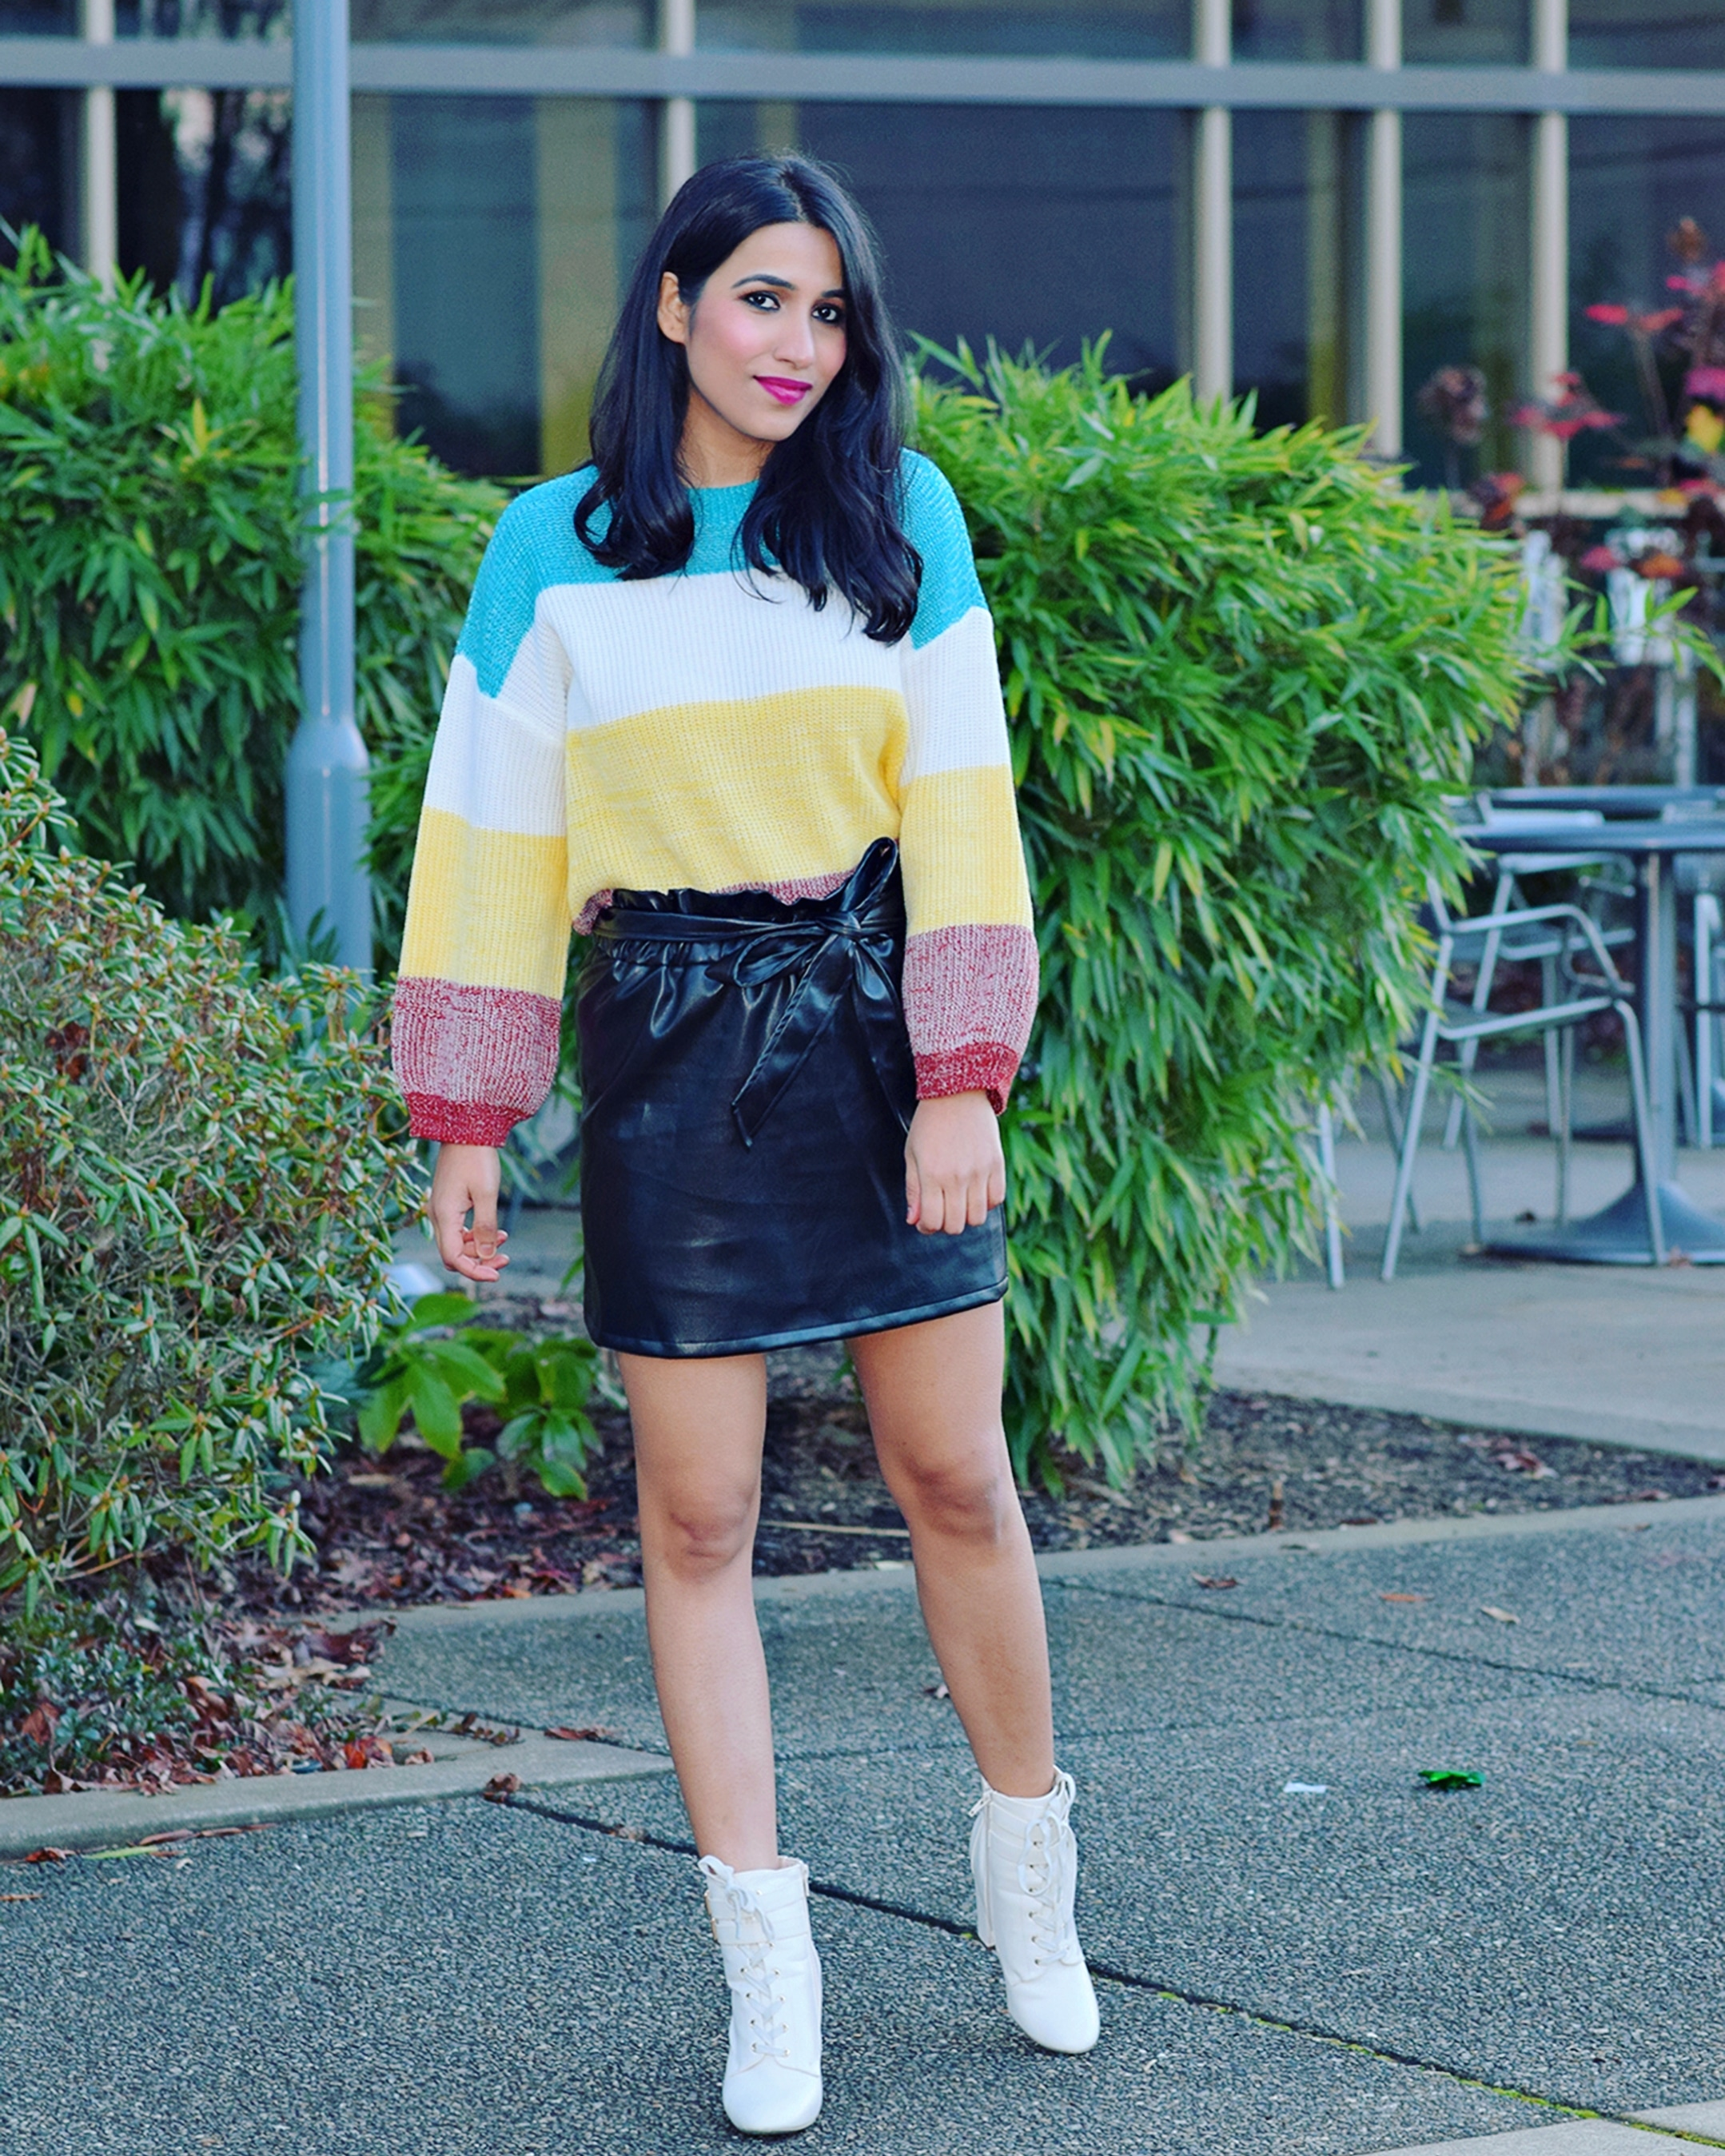 Winter Outfit Ideas That Are Chic And Feminine|SHEIN